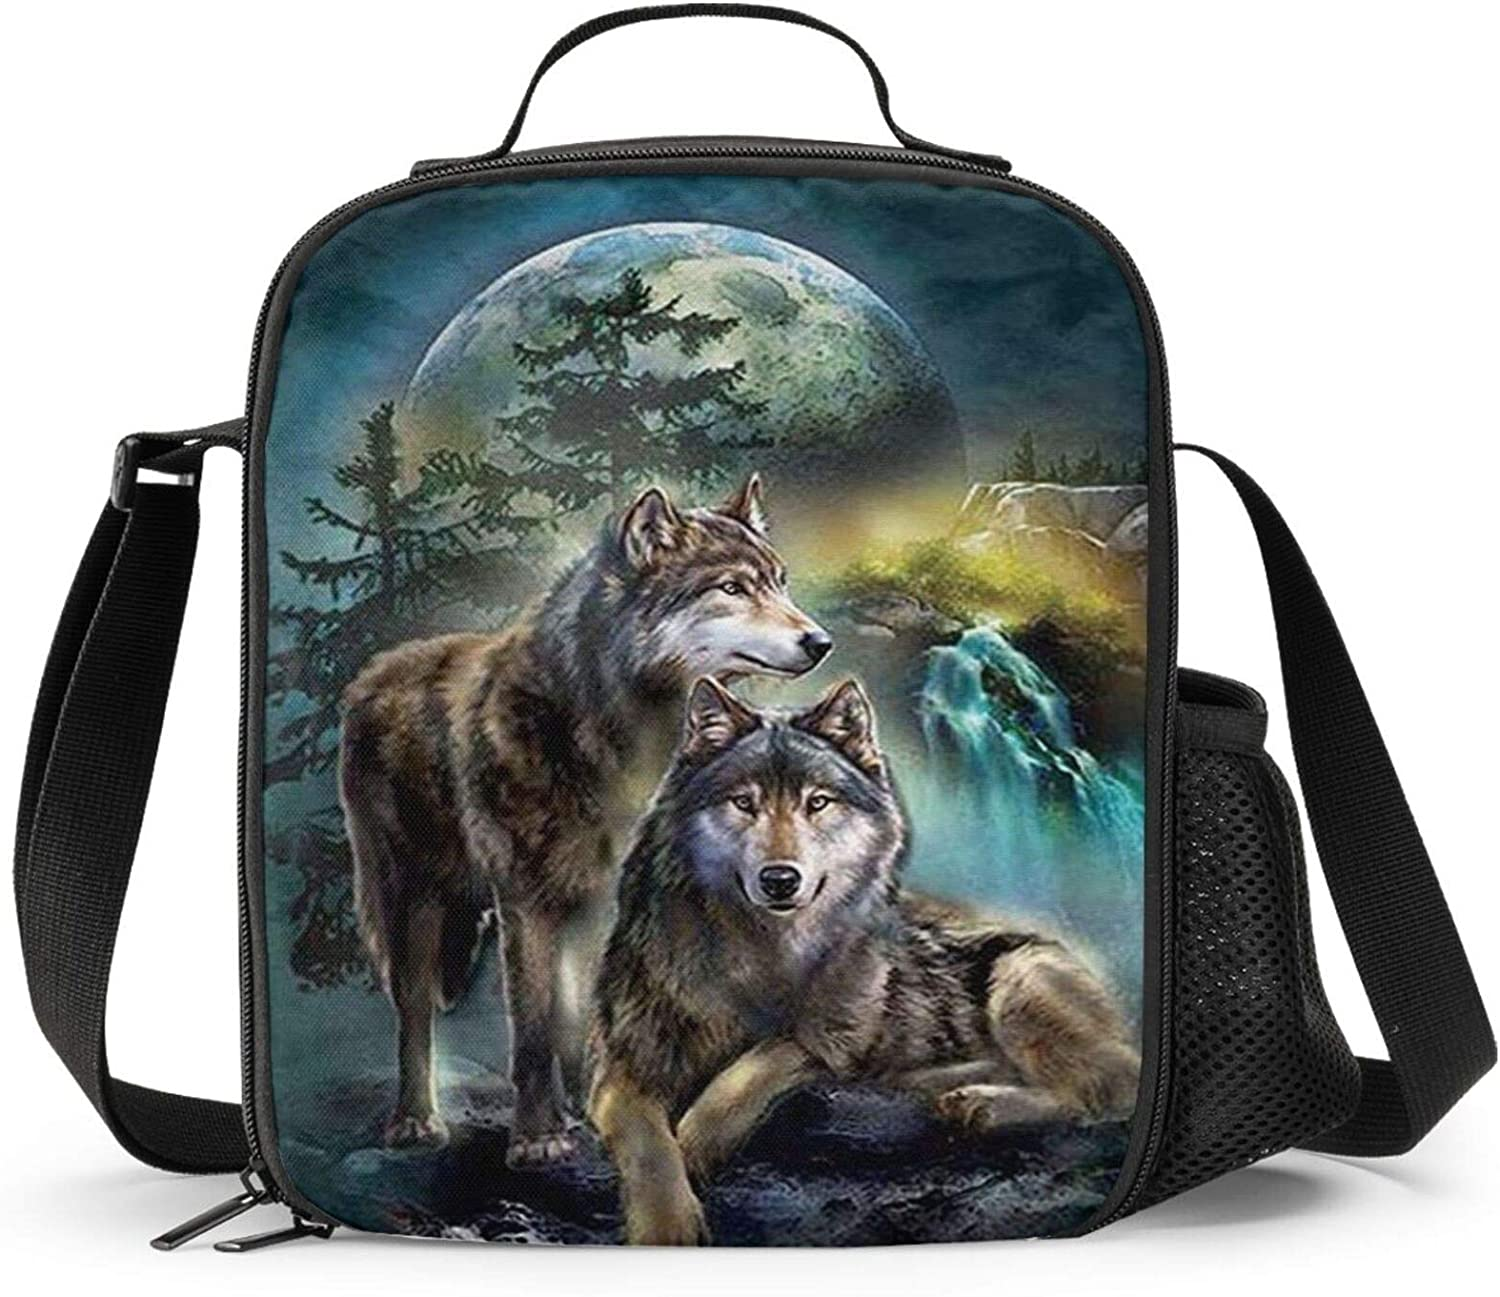 PrelerDIY Wolf Lunch Box - Insulated Lunch Box for Kids Funny 3D forest Design with Side Pocket & Shoulder Strap Lunch Bag Perfect for School/Camping/Hiking/Picnic/Beach/Travel